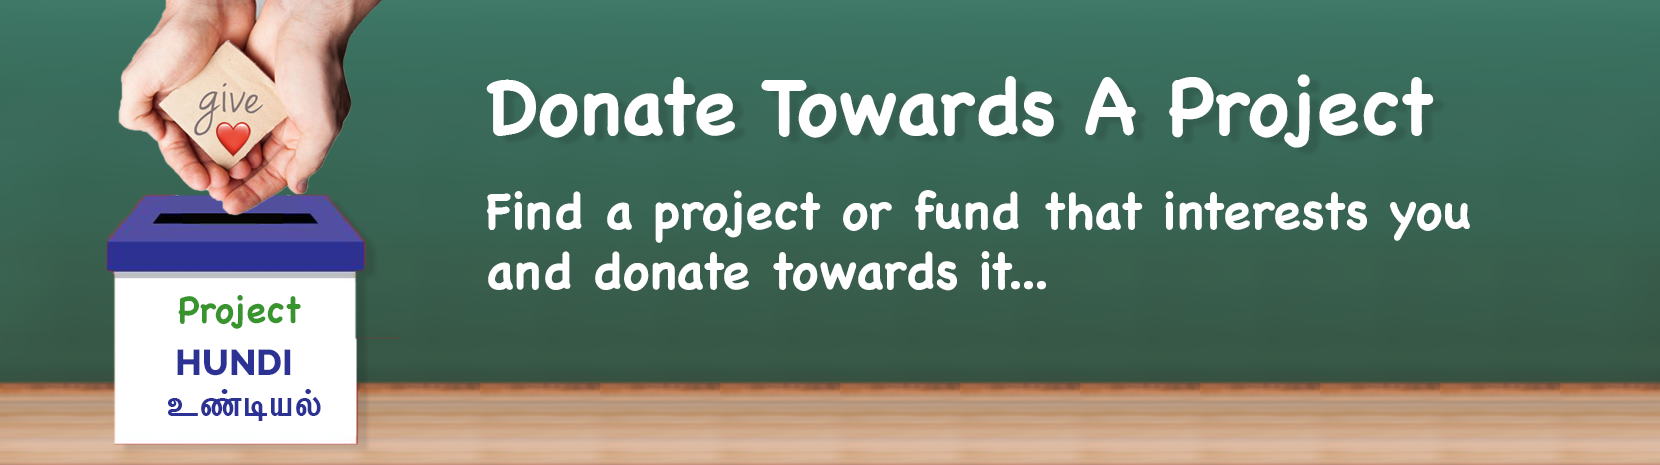 Donate Towards A Project